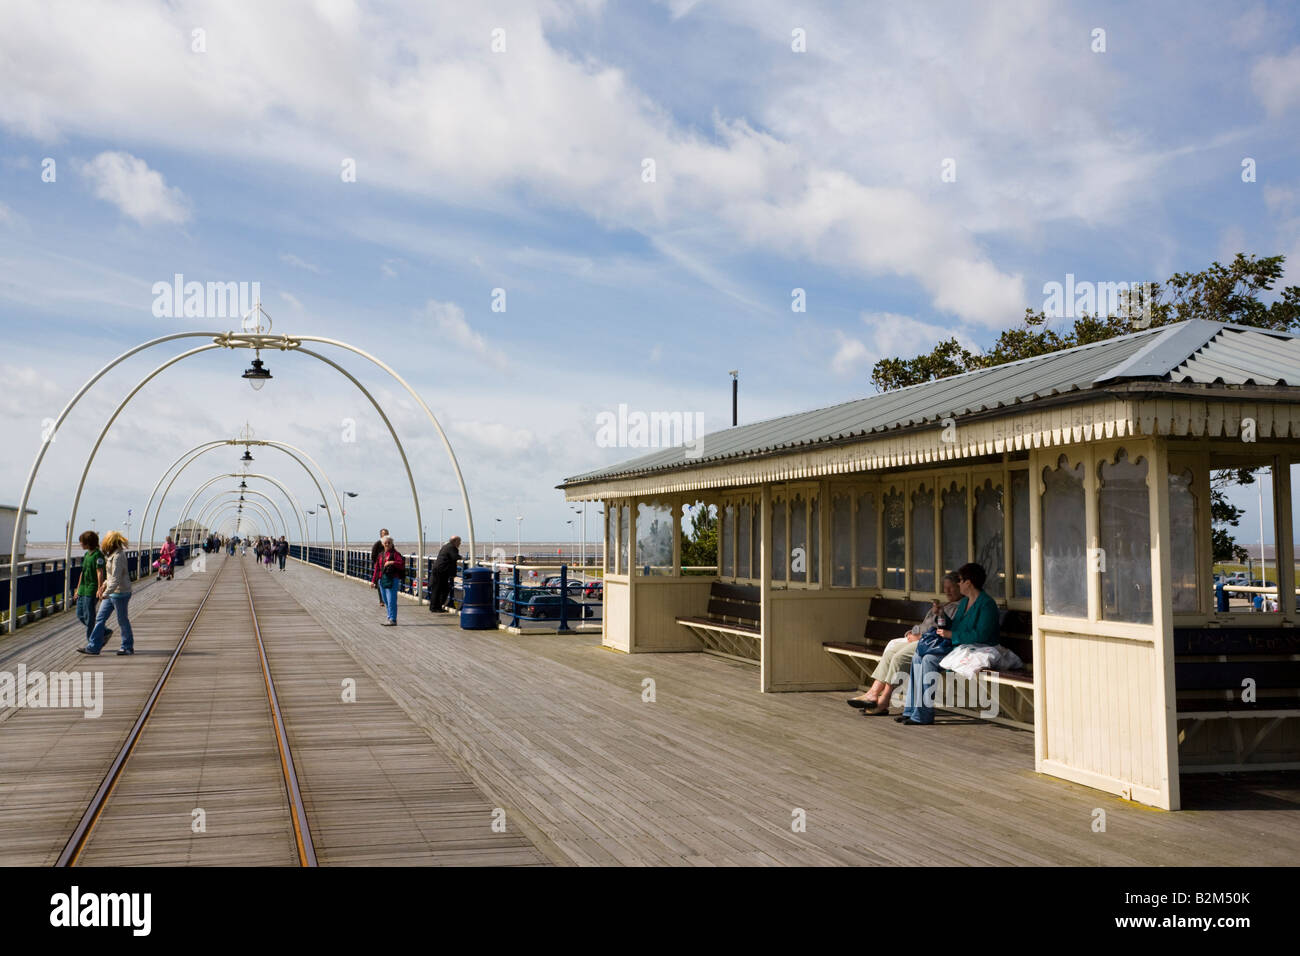 Southport Merseyside England UK. Pier and shelter in seaside resort in summer - Stock Image